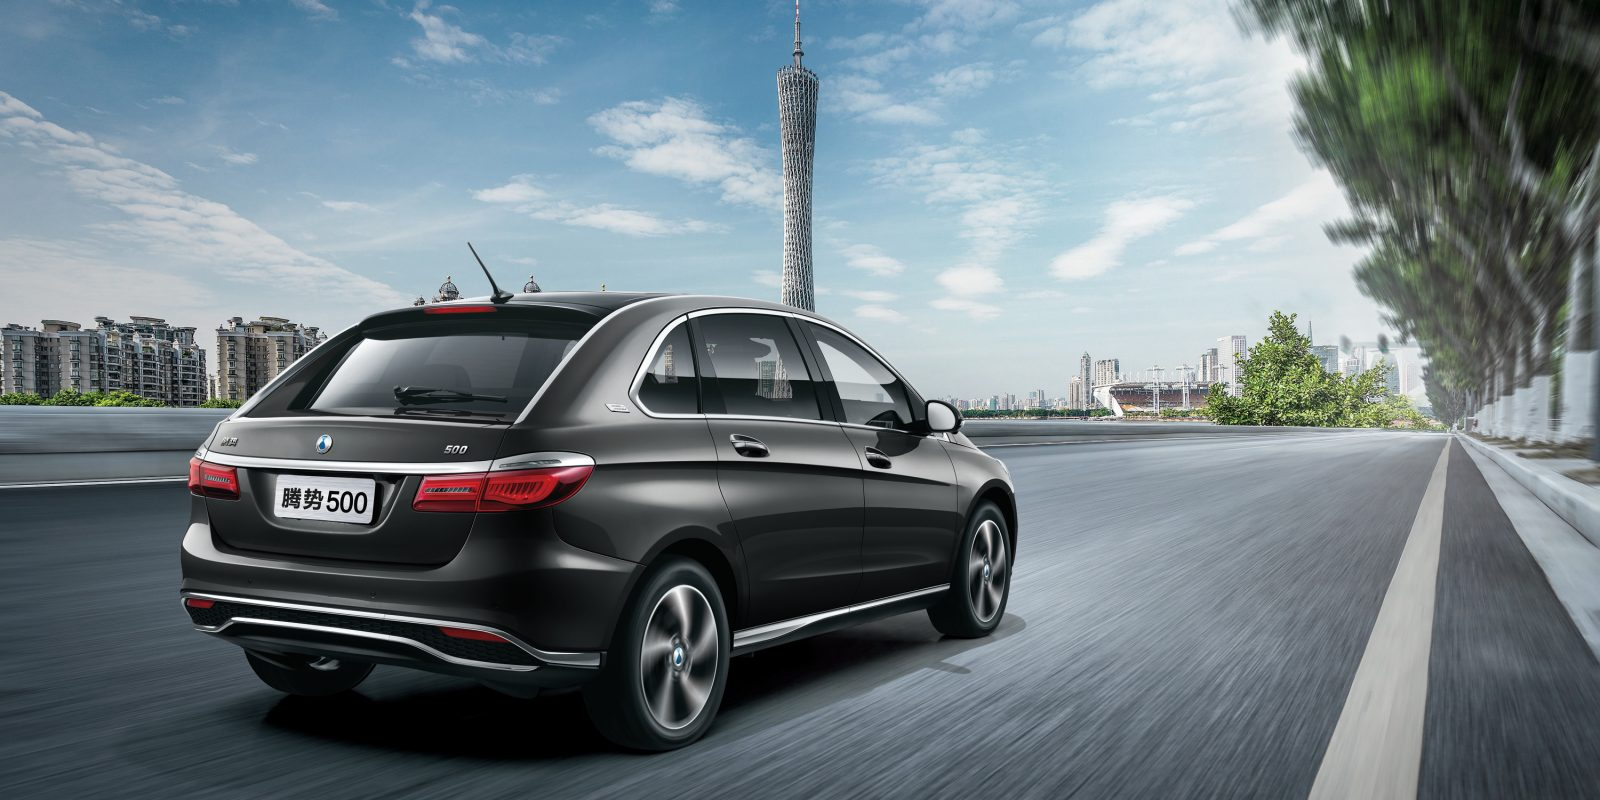 Daimler And Byd Unveil New Long Range Denza Electric Car For Chinese Market